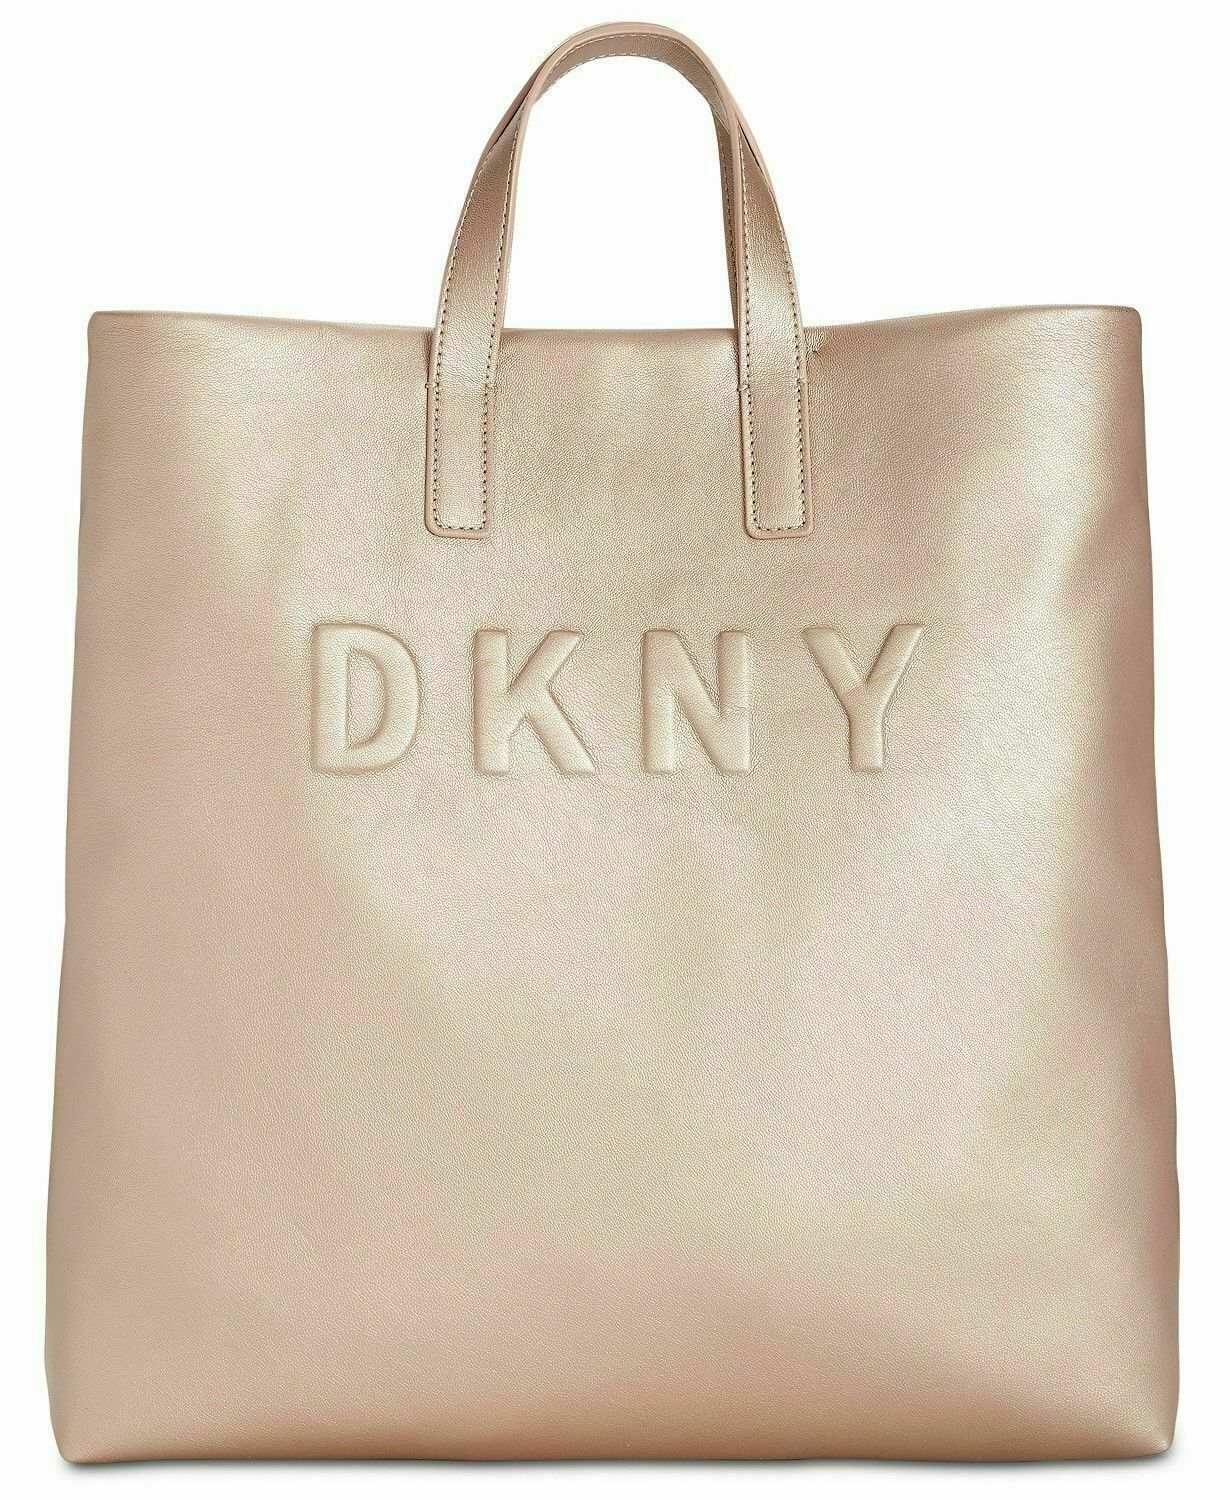 NWT DKNY Women's Tilly Large Tote Crossbody Strap Embossed Signature Logo, Gold